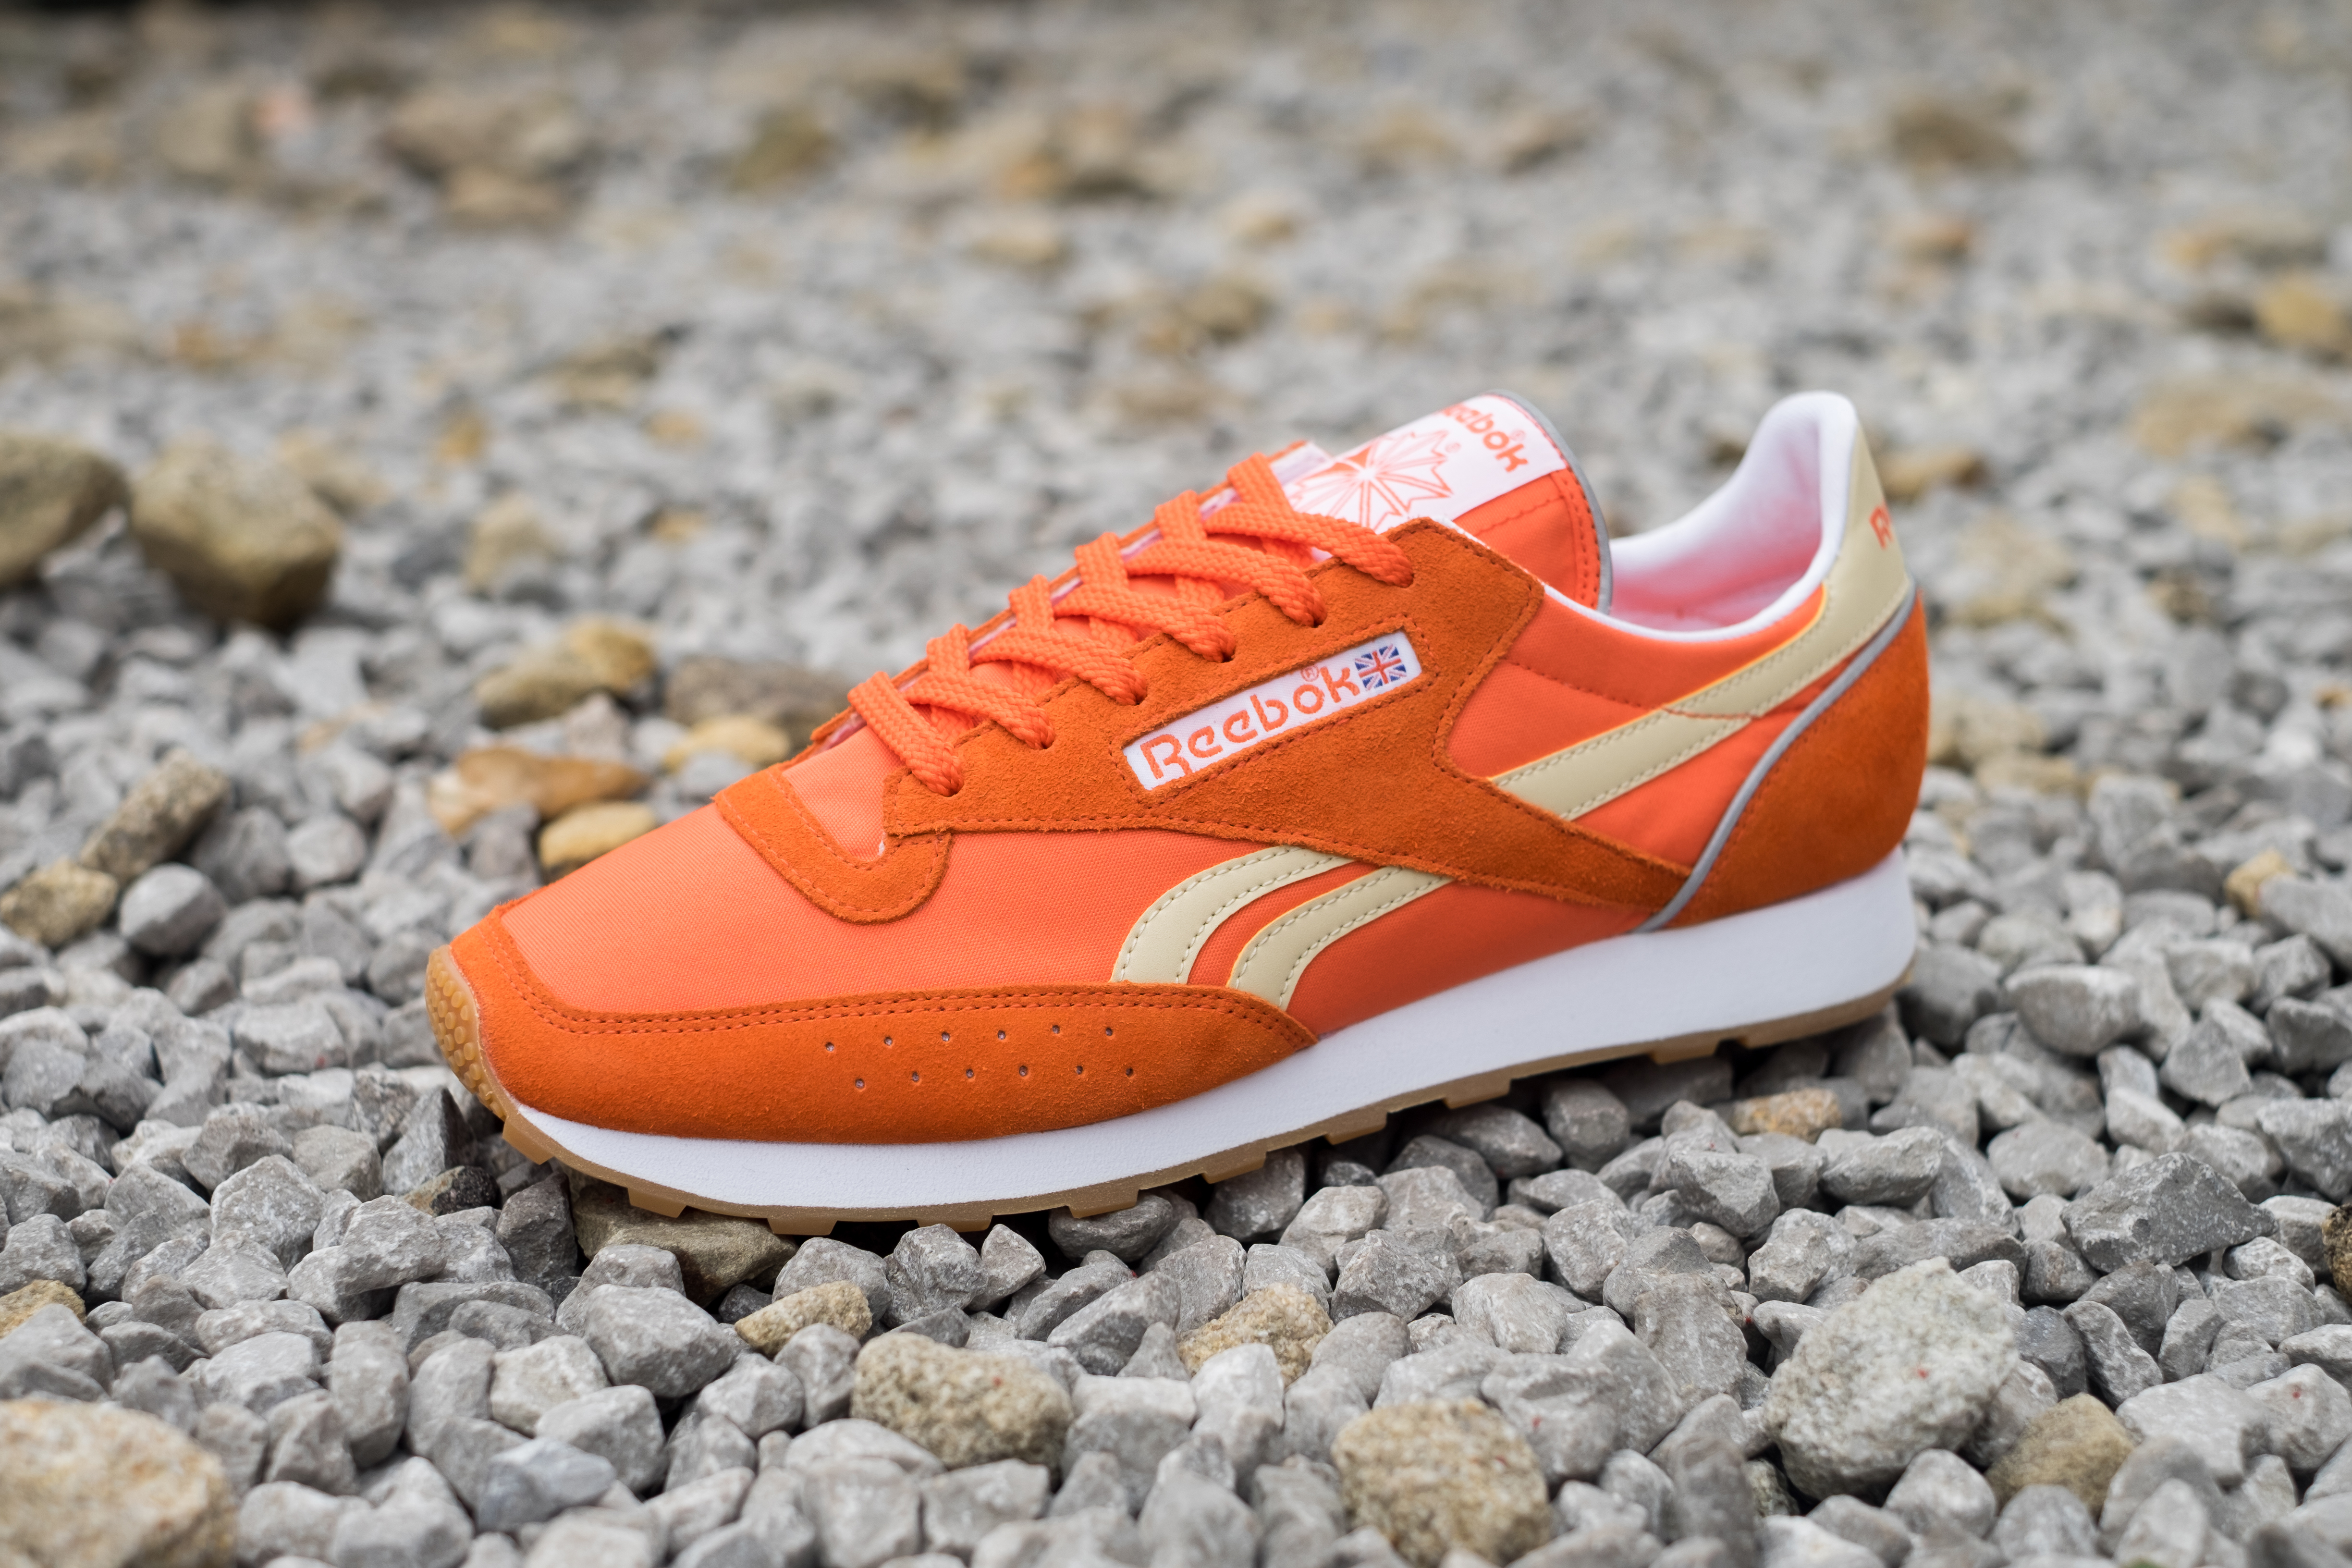 066a3347c3f Reebok Classic  83 Ree-Cut - size  Exclusive - size  blog